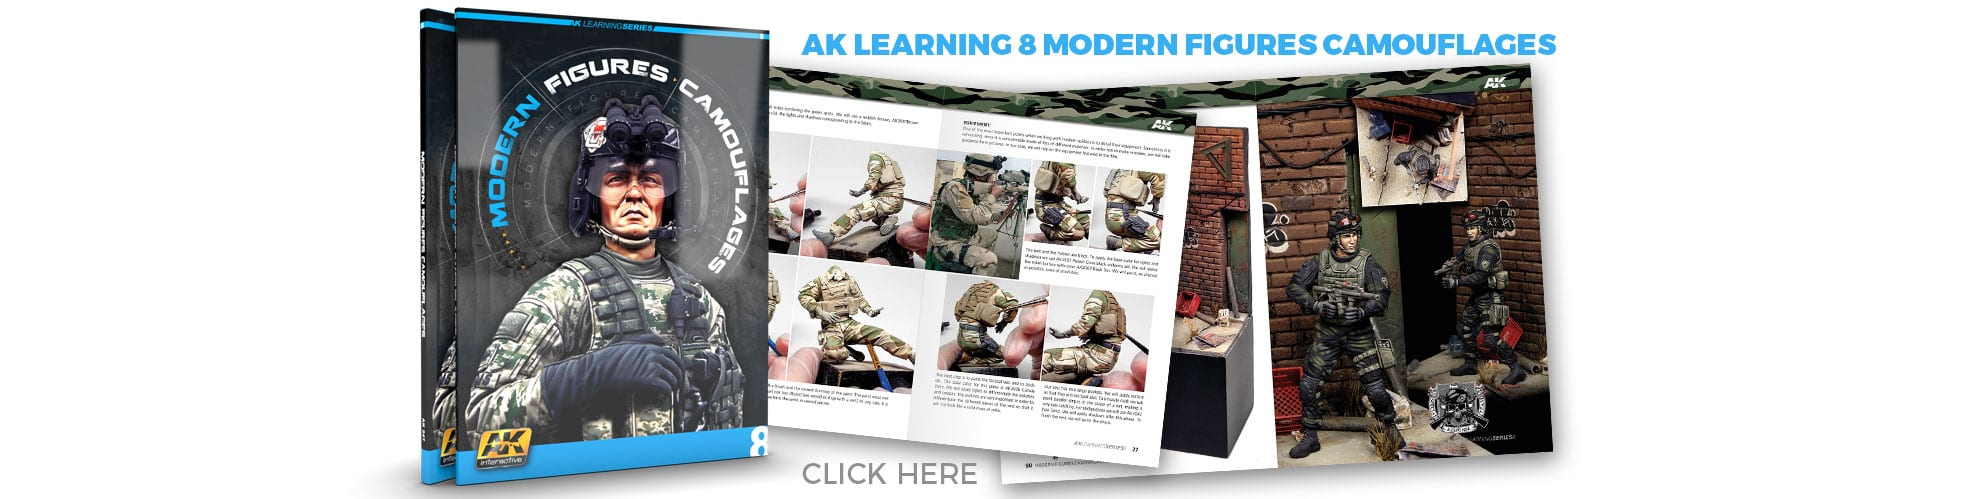 AK-LEARNING8 AK-INTERACTIVE FIGURES CAMOUFLAGES MODERN